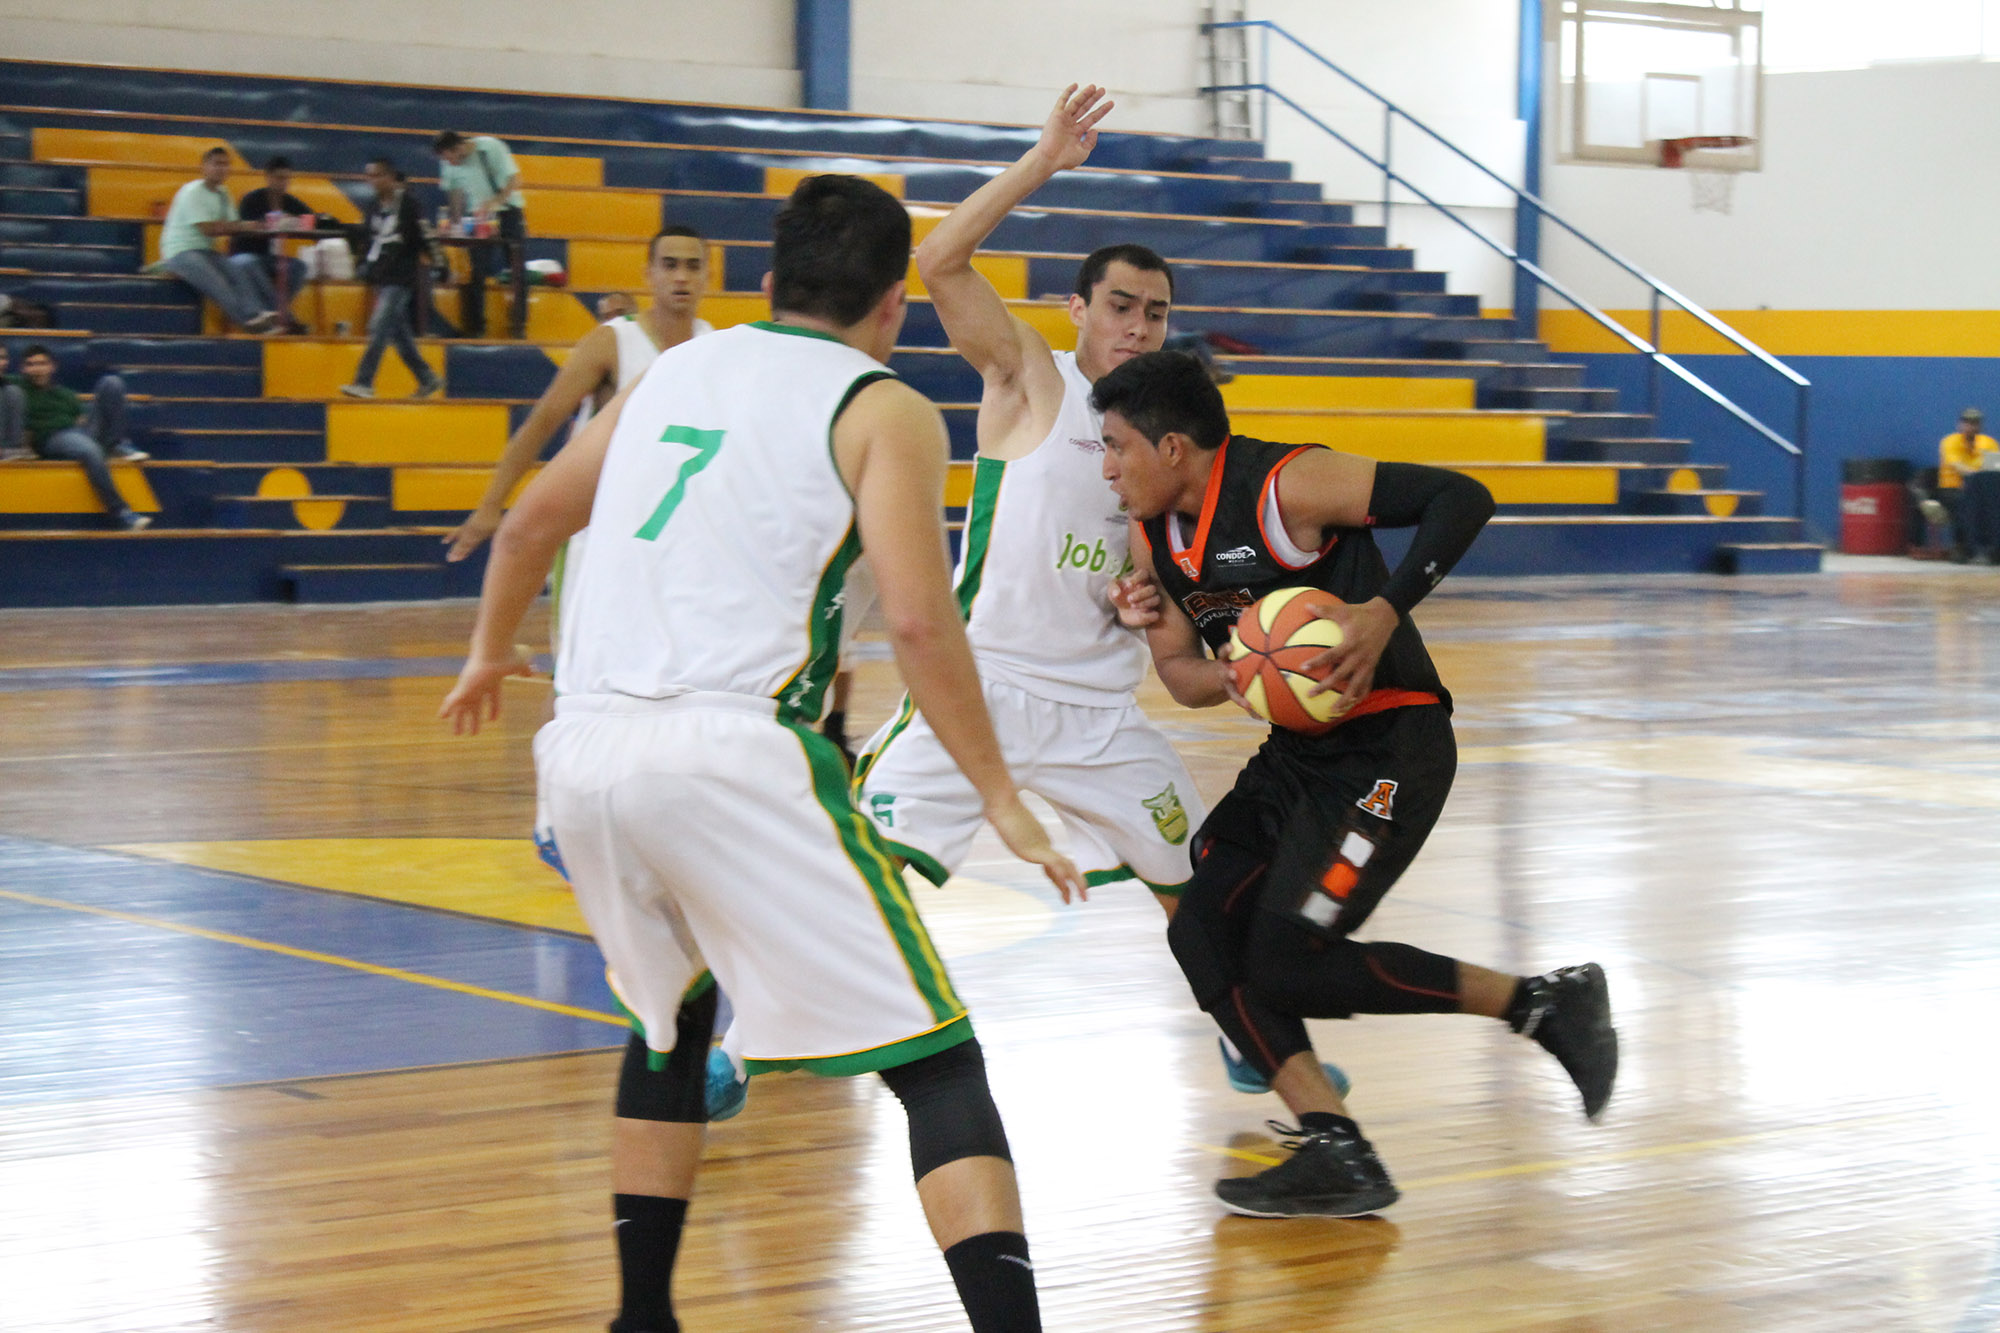 Universiada nacional 2015-basquetbol  ITESM Guadalajara vs Universidad Marista de Merida-foto Norma Martinez 8